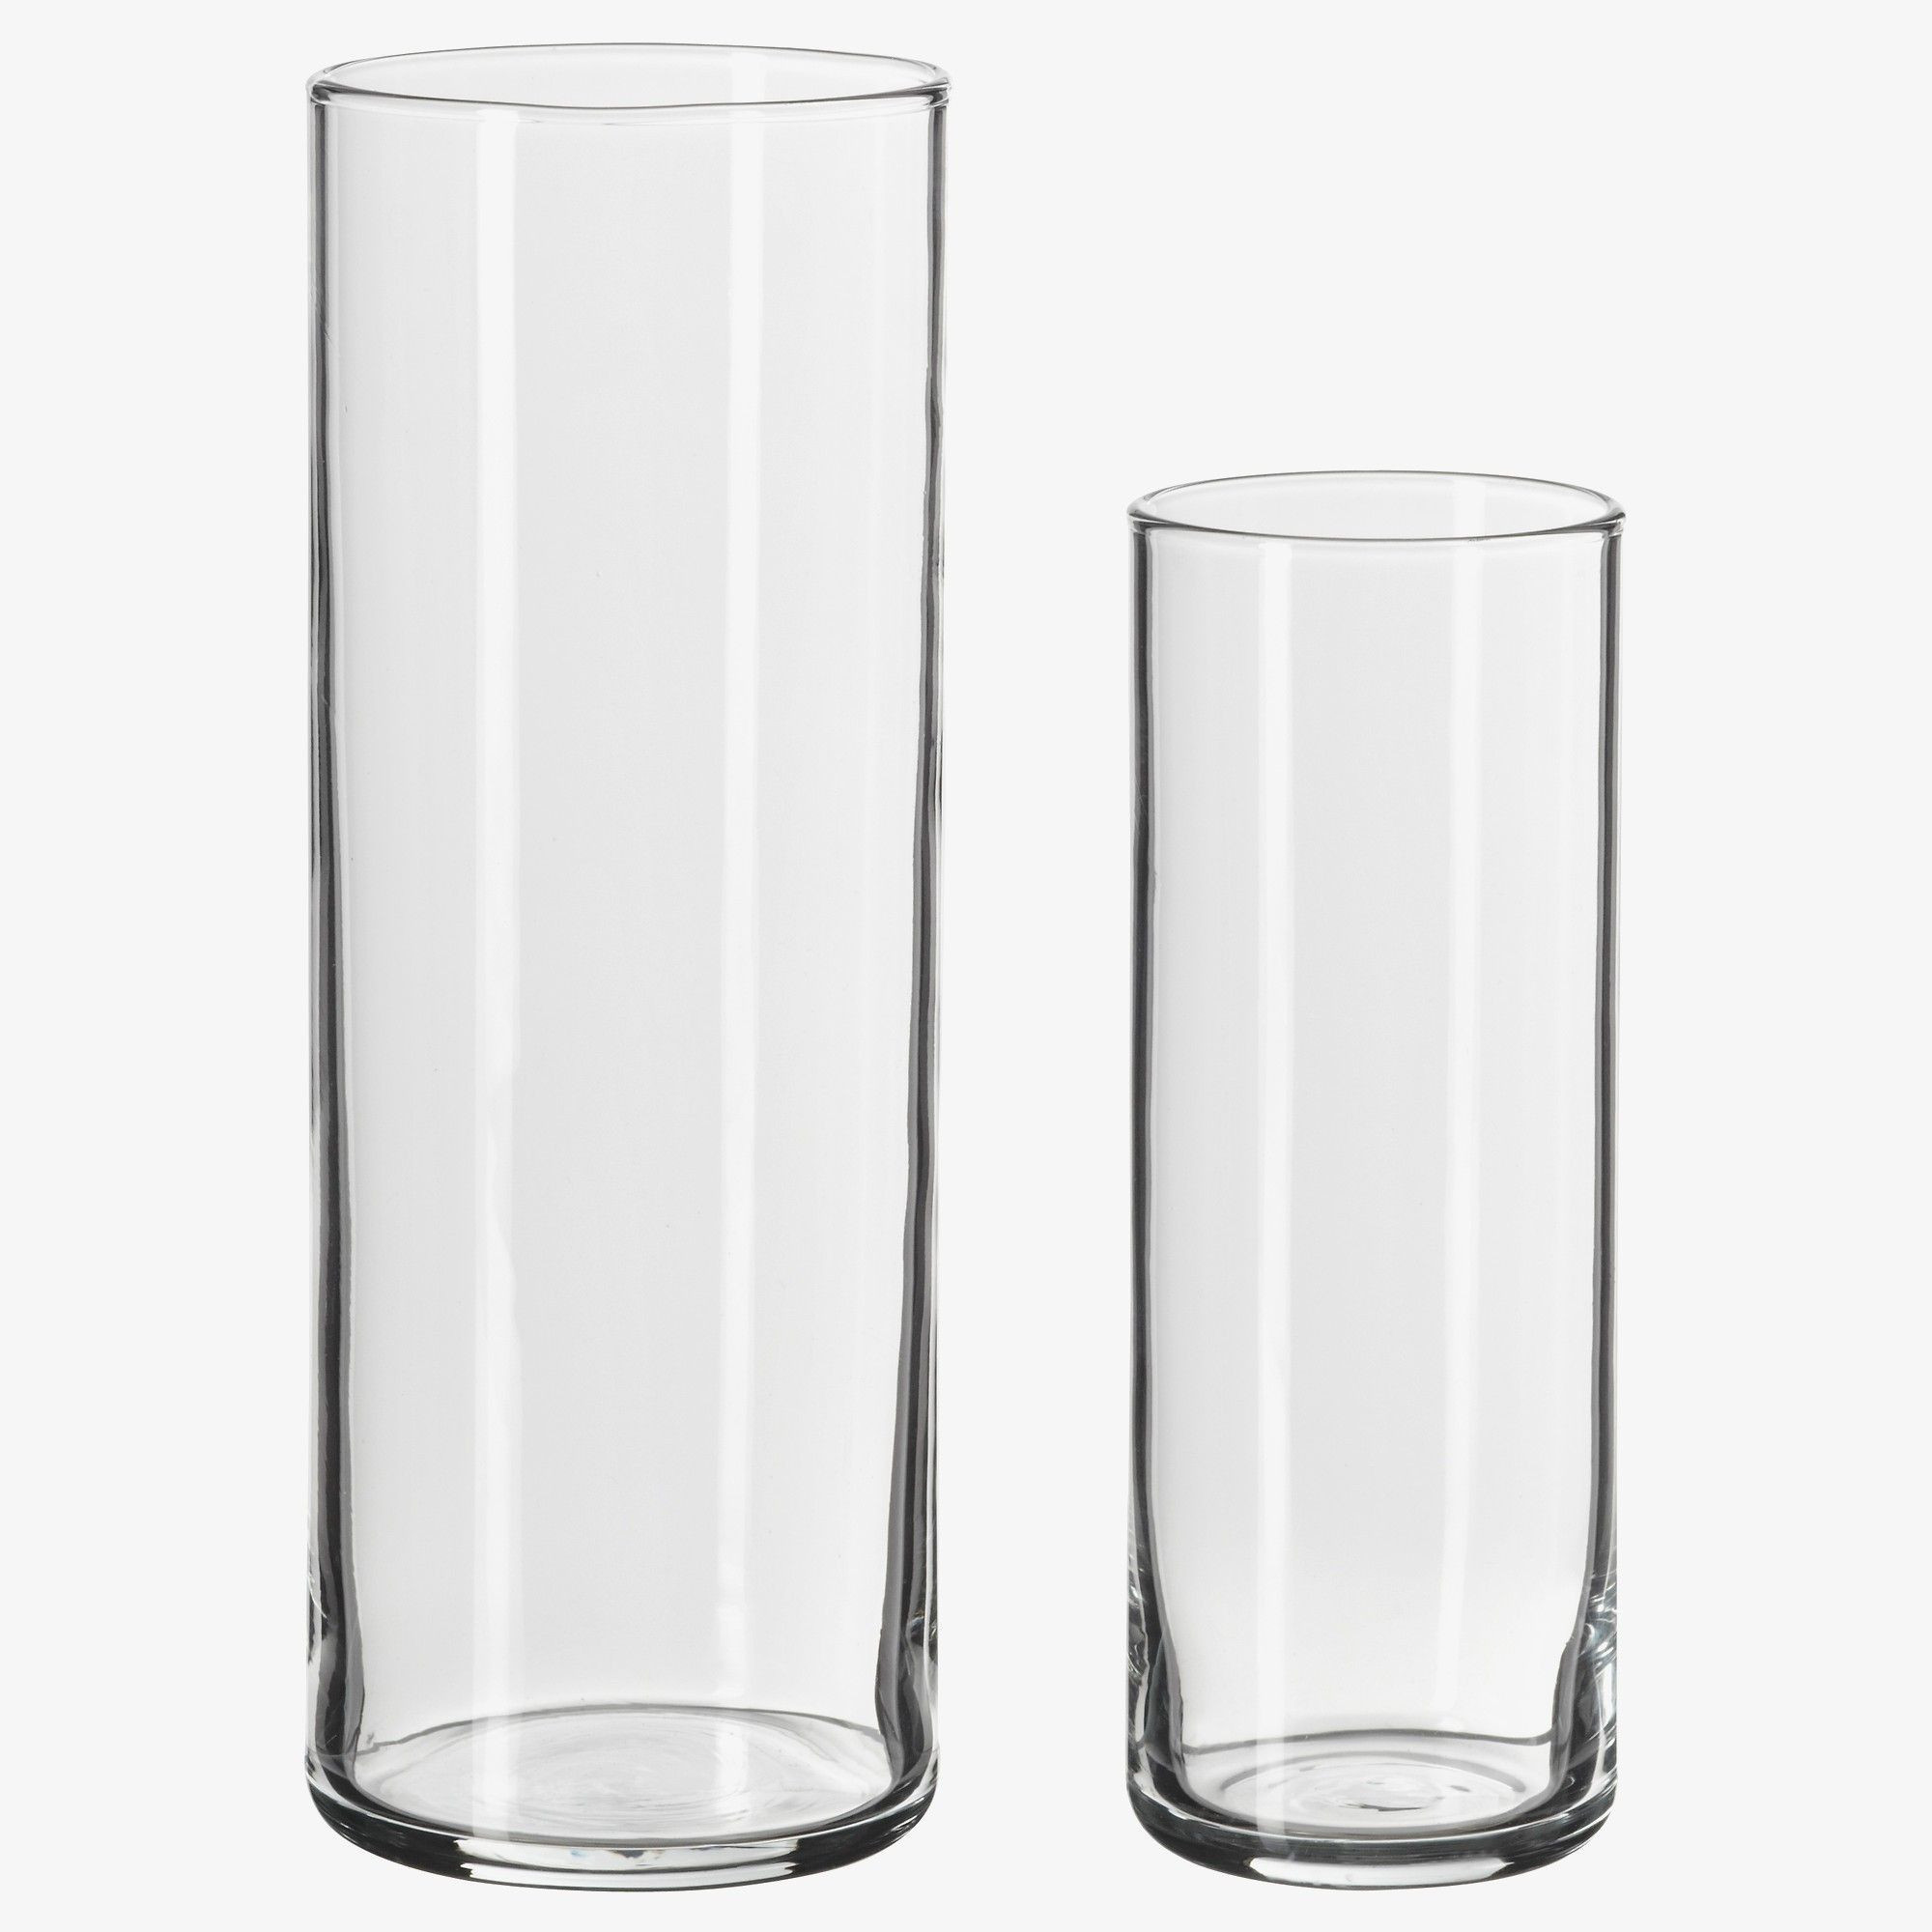 21 Recommended Tall Cylinder Vases Bulk 24